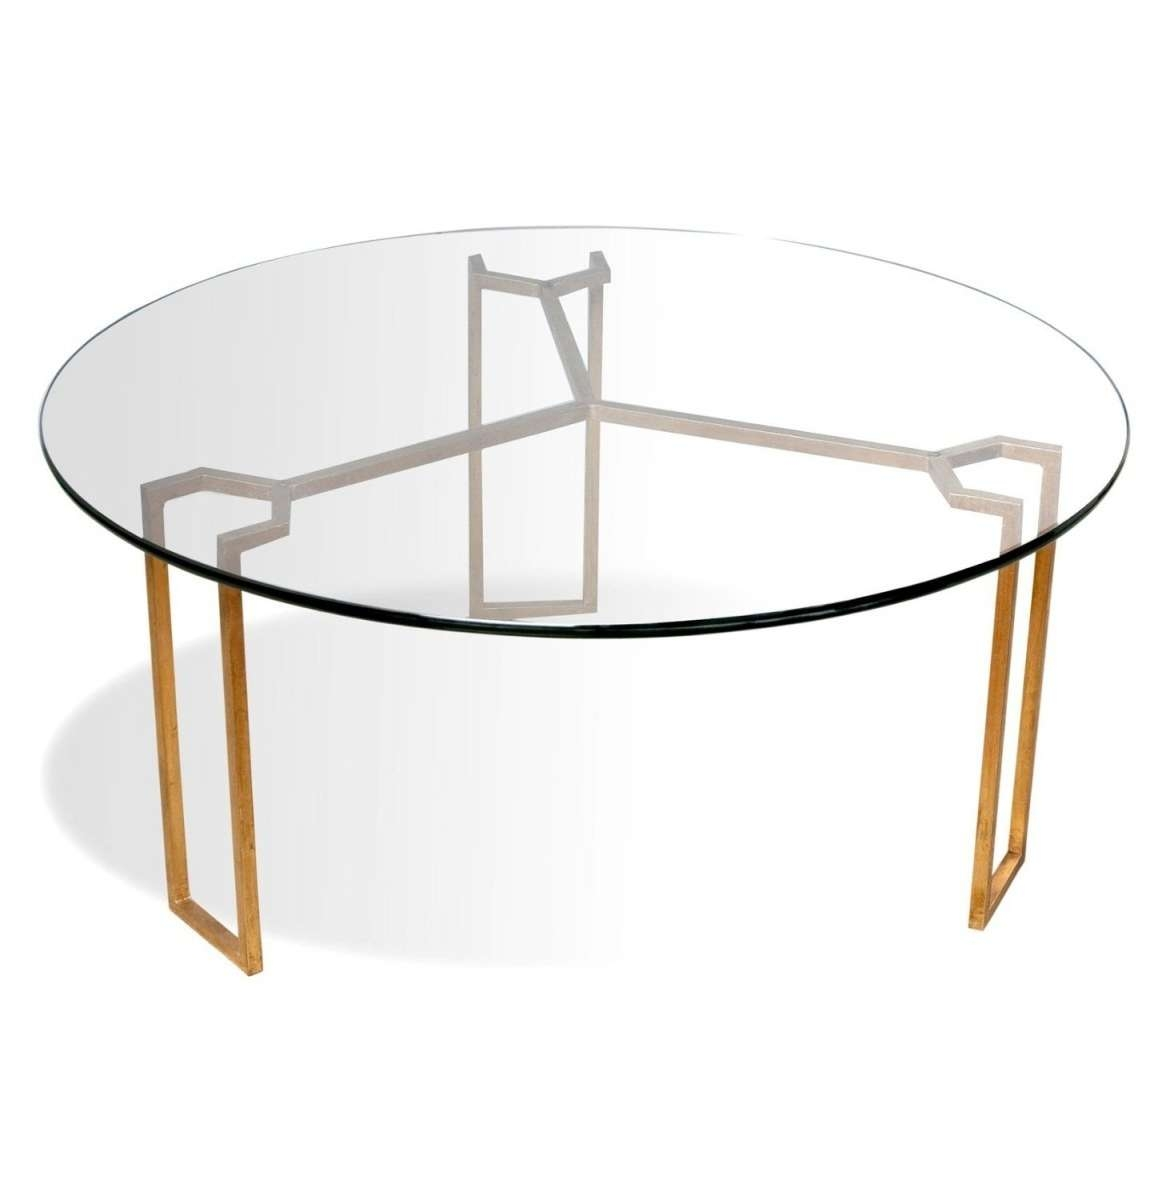 Fashionable Circular Glass Coffee Tables Regarding Coffee Tables : Round Glass Side Table Ikea Small With Drawer Oak (View 11 of 20)